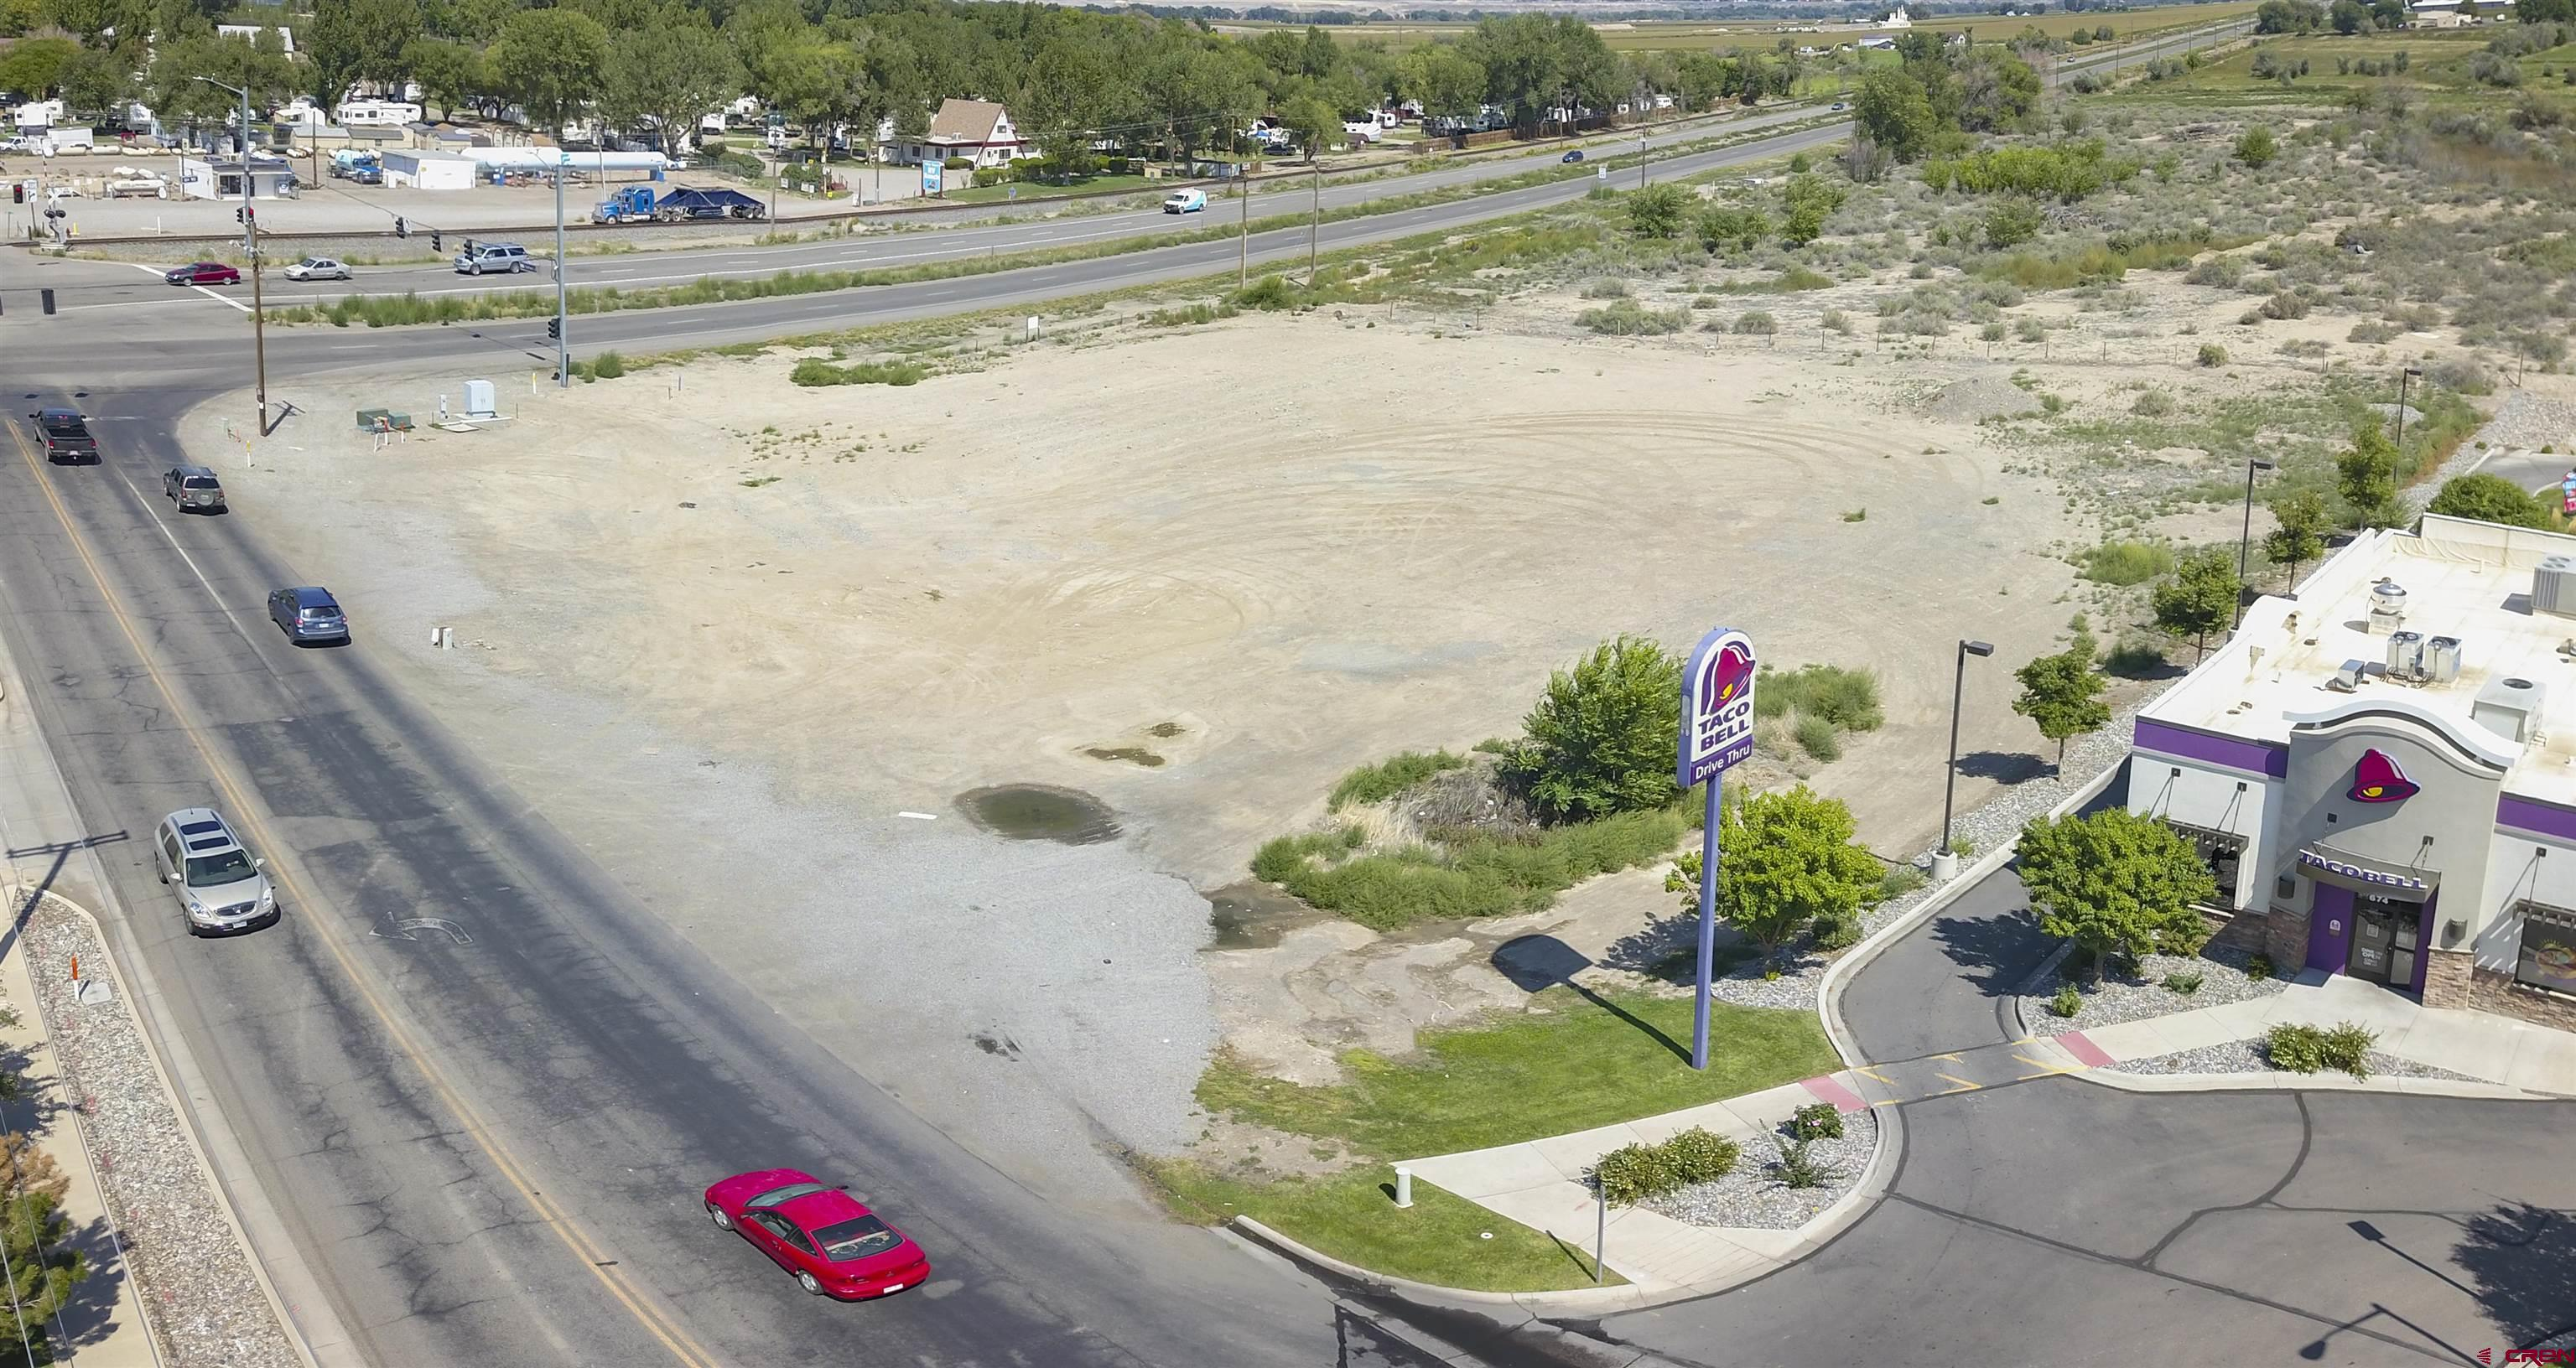 1.78 acre (MOL) vacant commercial lot located in the heart of Delta's commercial hub. Situated on a signalized corner of Hwy 92 and Stafford Lane with 240+ ft of Hwy frontage. Centrally located for shoppers from Delta and the surrounding communities next to the only Walmart shopping center within a 20-mile area. Zoned B-2 in the city of Delta which allows for gas stations, retail or vehicle sales and service, to name a few. Utilities are available. Take advantage of this prime, level lot ready for construction. Incredible tax break with Opportunity Zone designation!